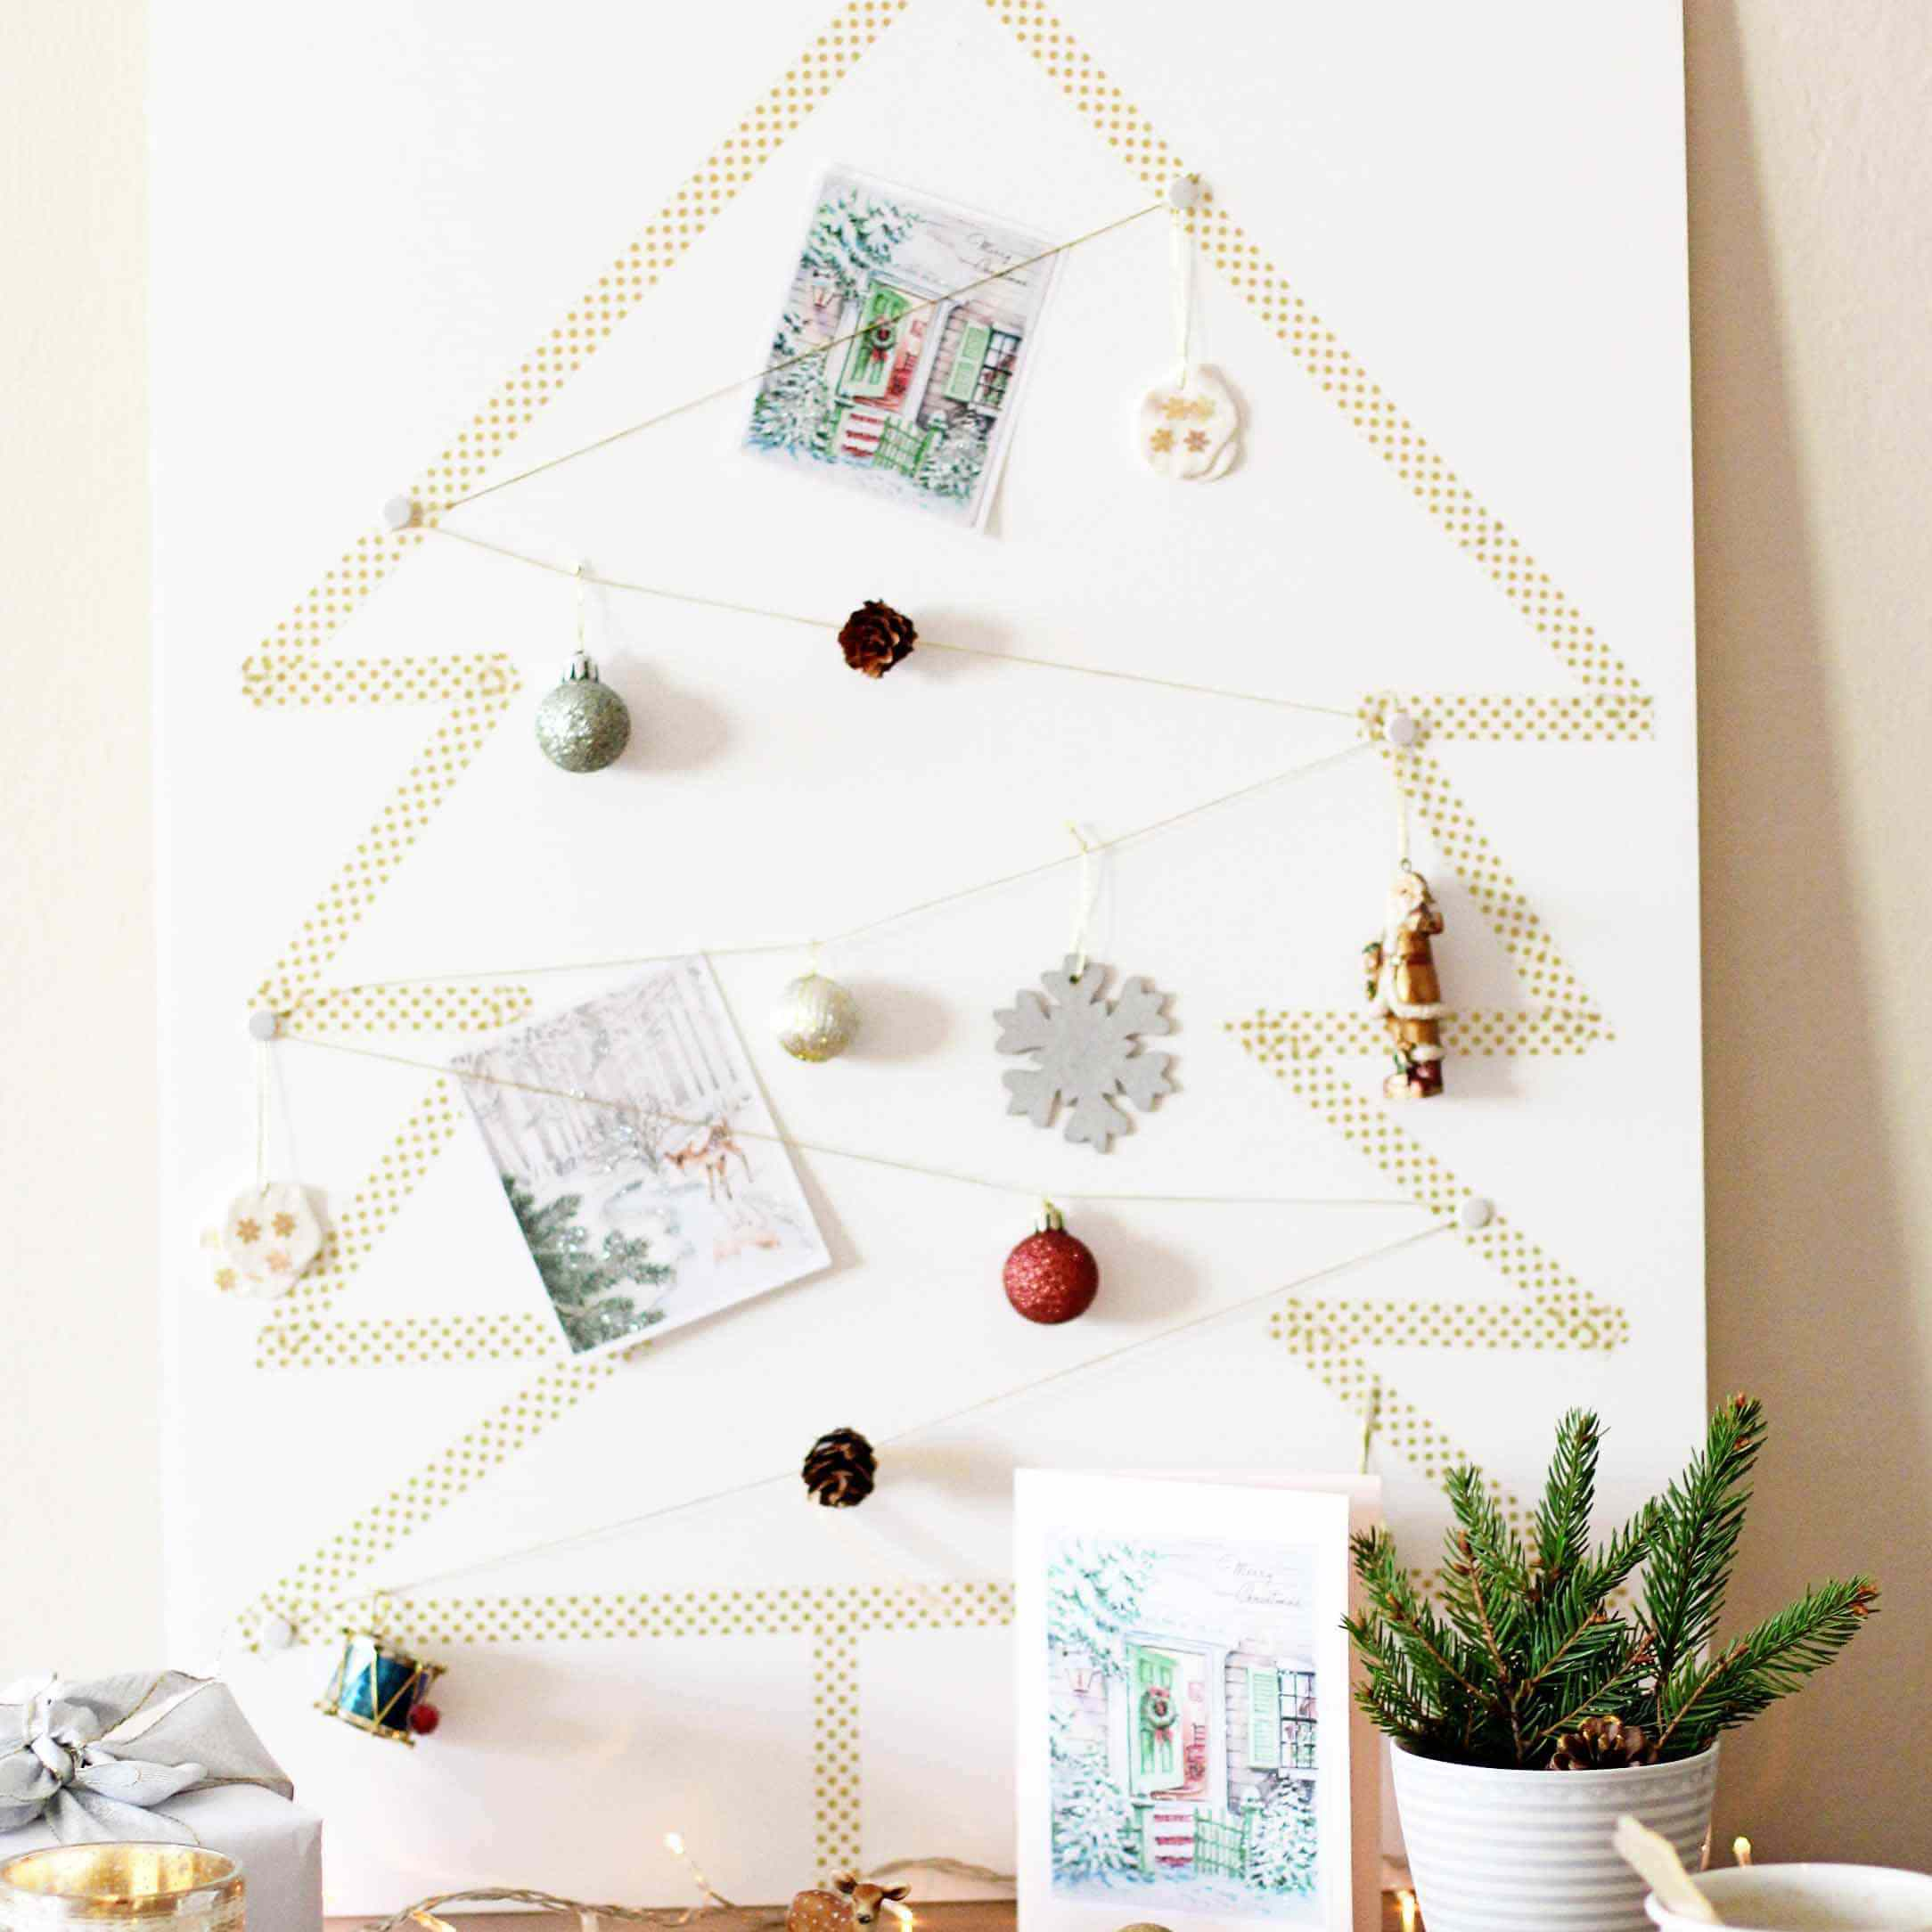 Washi tape in the shape of a tree on a canvas with small ornaments and photos.